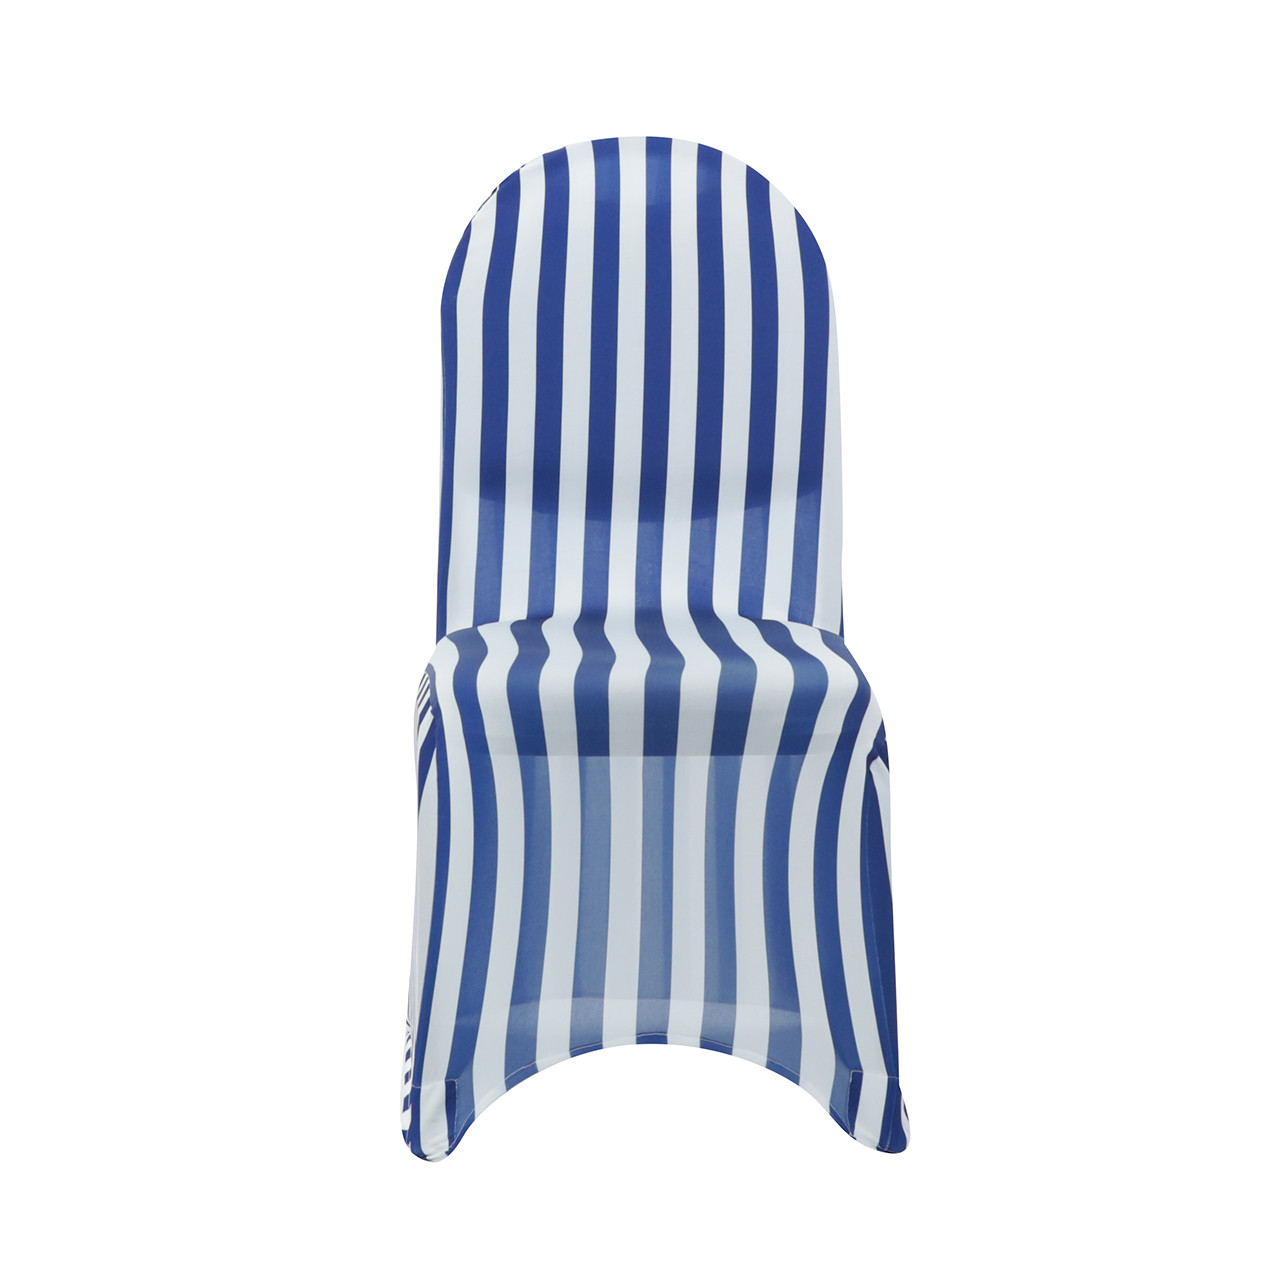 Tremendous Spandex Chair Cover Striped White And Royal Blue Pack Of 6 Caraccident5 Cool Chair Designs And Ideas Caraccident5Info